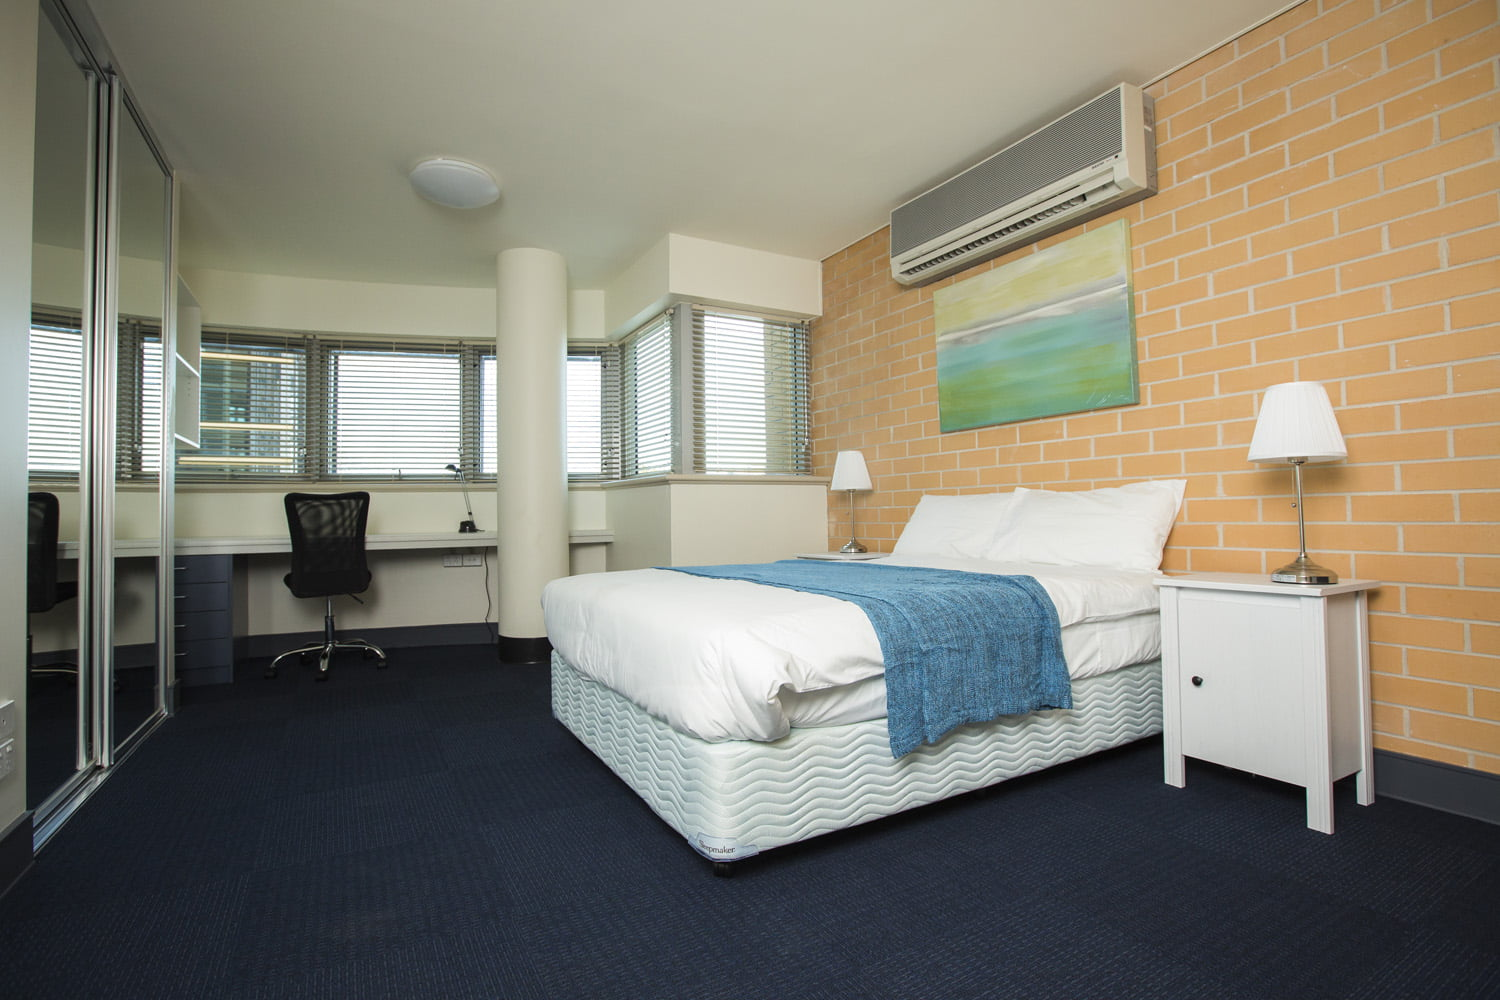 A Studio room featuring a double bed and air-conditioning